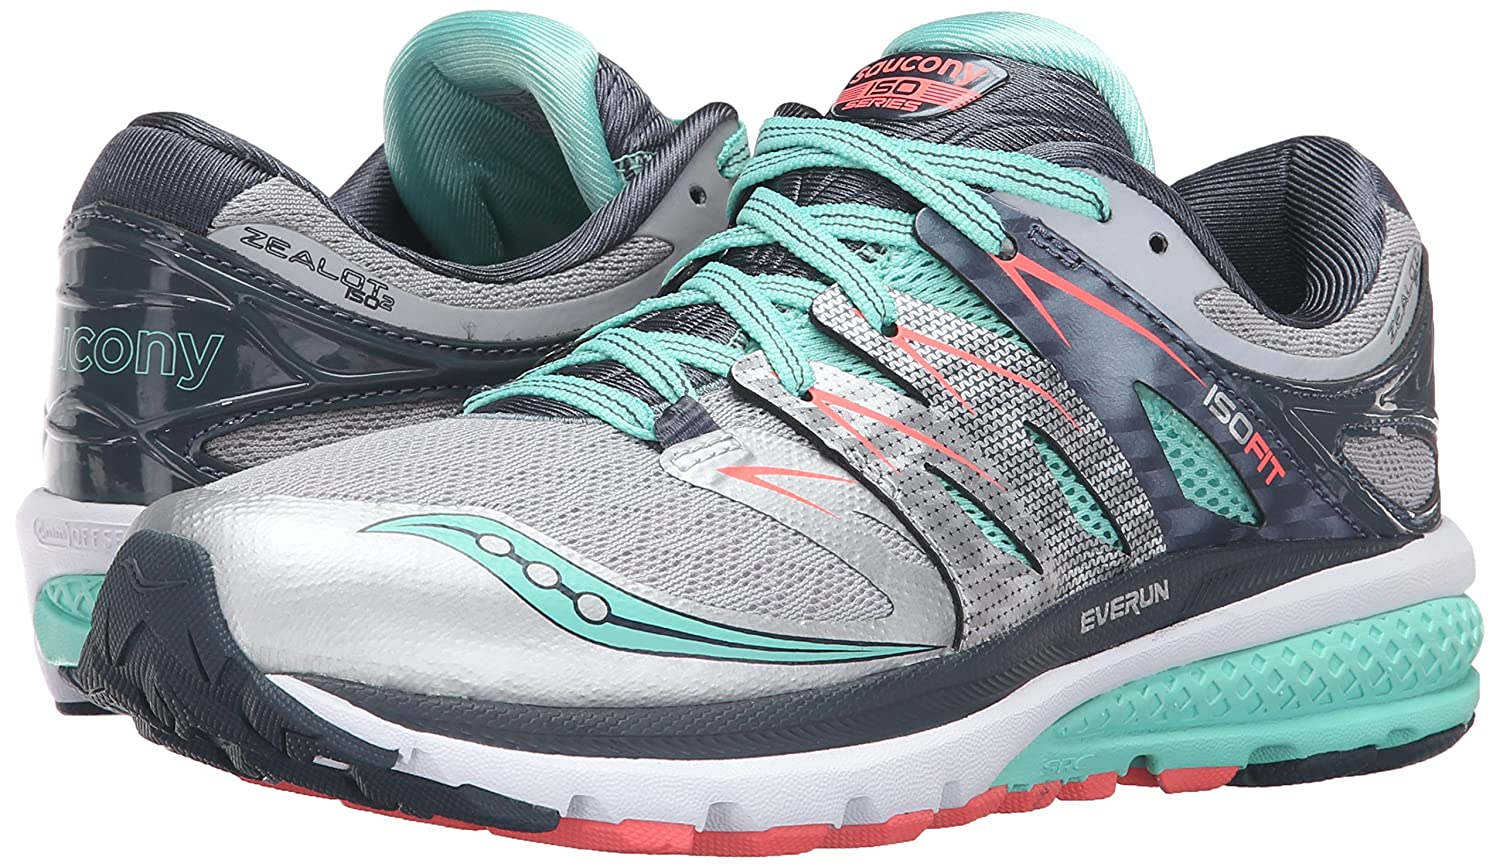 Saucony Women's Zealot Iso 2 Running US|Silver/Mint/Coral Shoe B018EYUSSM 9.5 B(M) US|Silver/Mint/Coral Running 3ceb0b